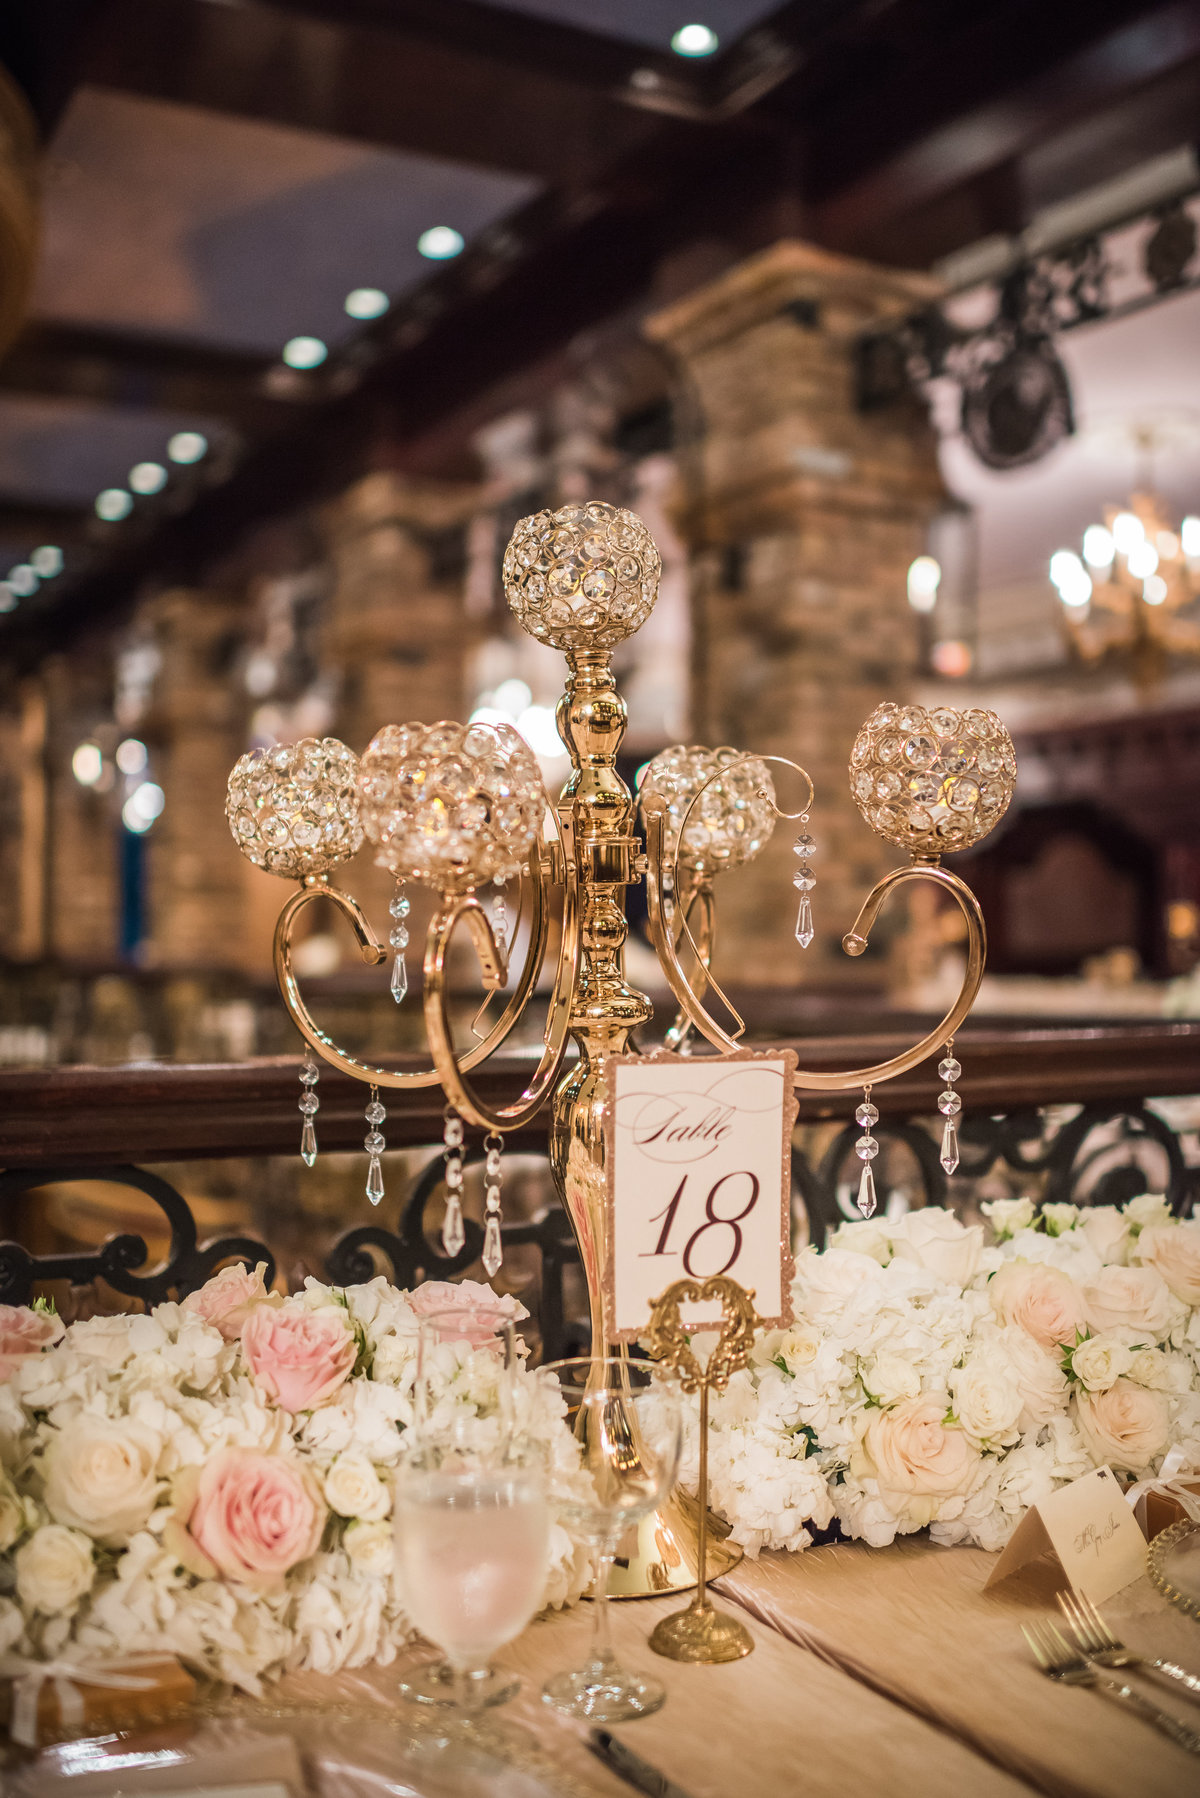 Miami-Wedding-Planner-Gather-and-Bloom-Events-janessa-and-jorge-reception-details-21